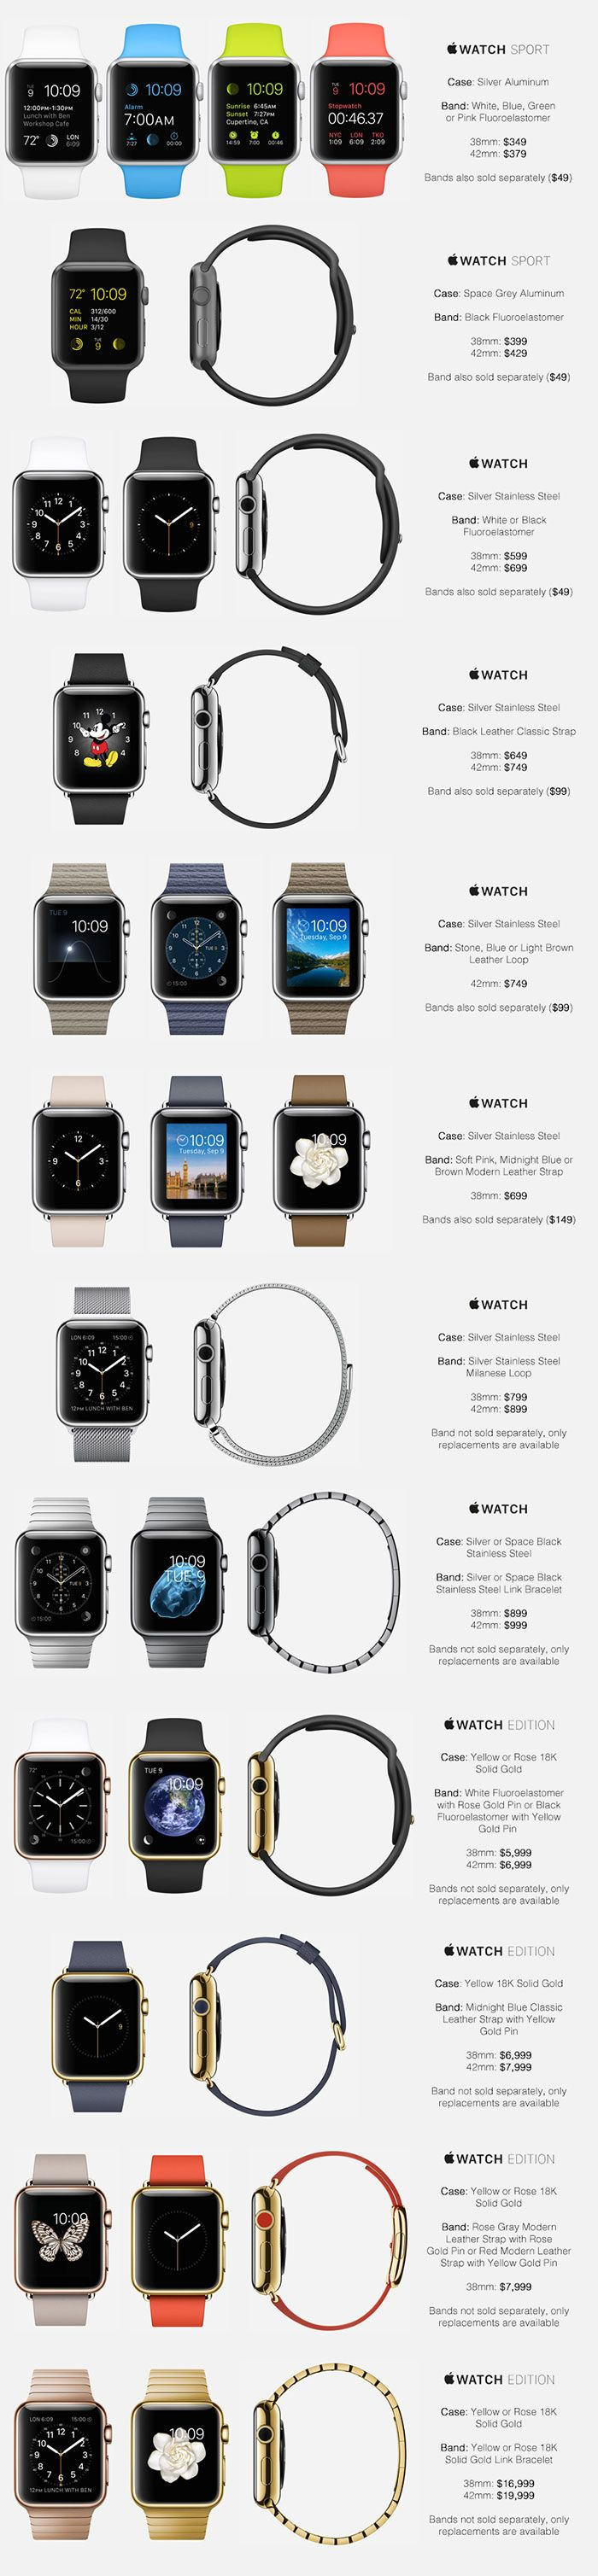 Apple Watch pricing guesses / www.doorsandmorellc.com Doors & More offers the latest products on garage doors and motors. Call us today for a quote!  228-872-1122